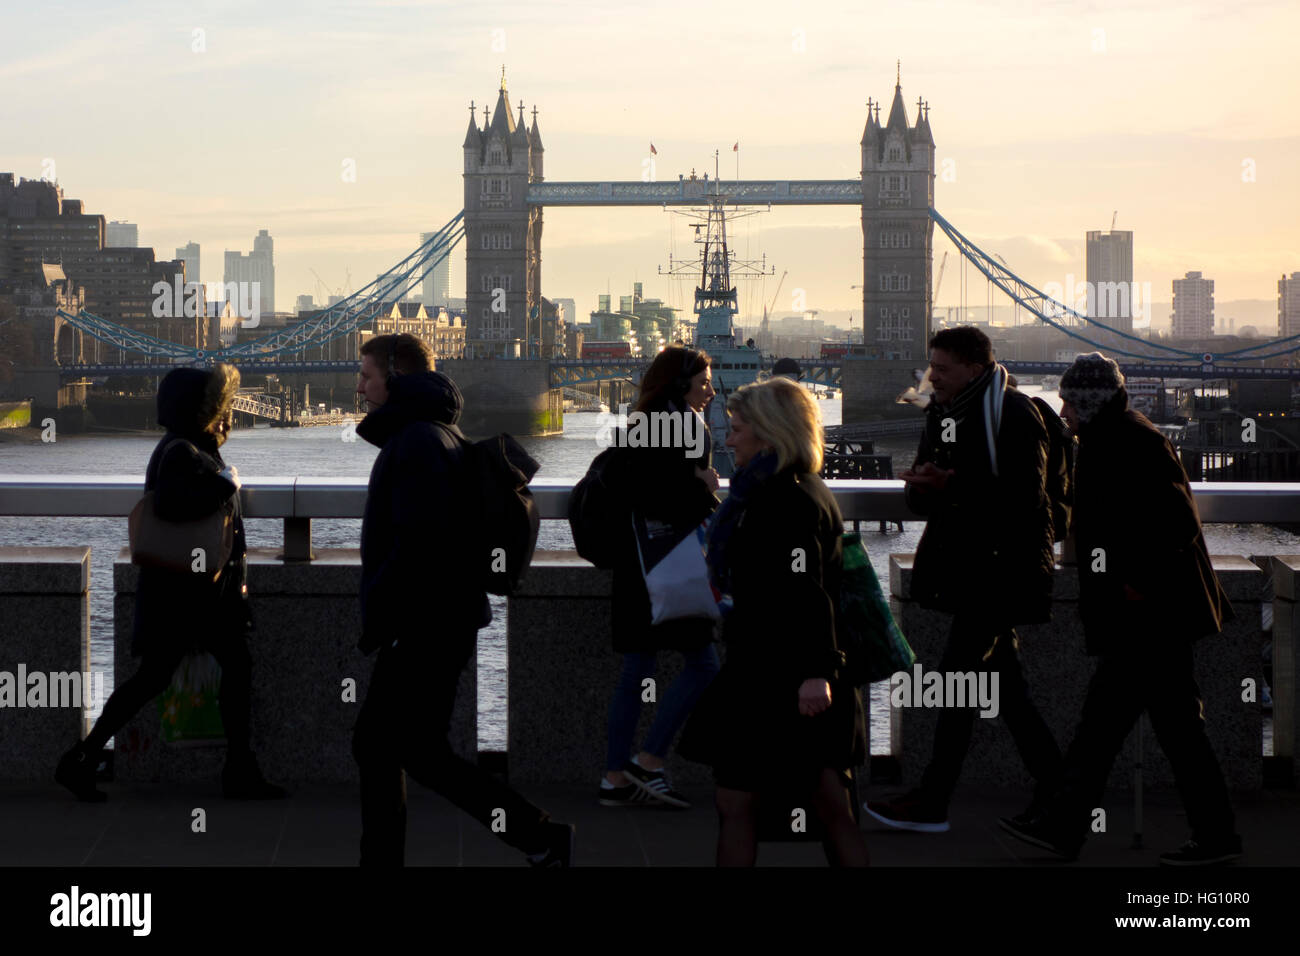 London, UK. 3rd Jan, 2017. Commuters in London head back to work over London Bridge this morning after the Christmas - Stock Image